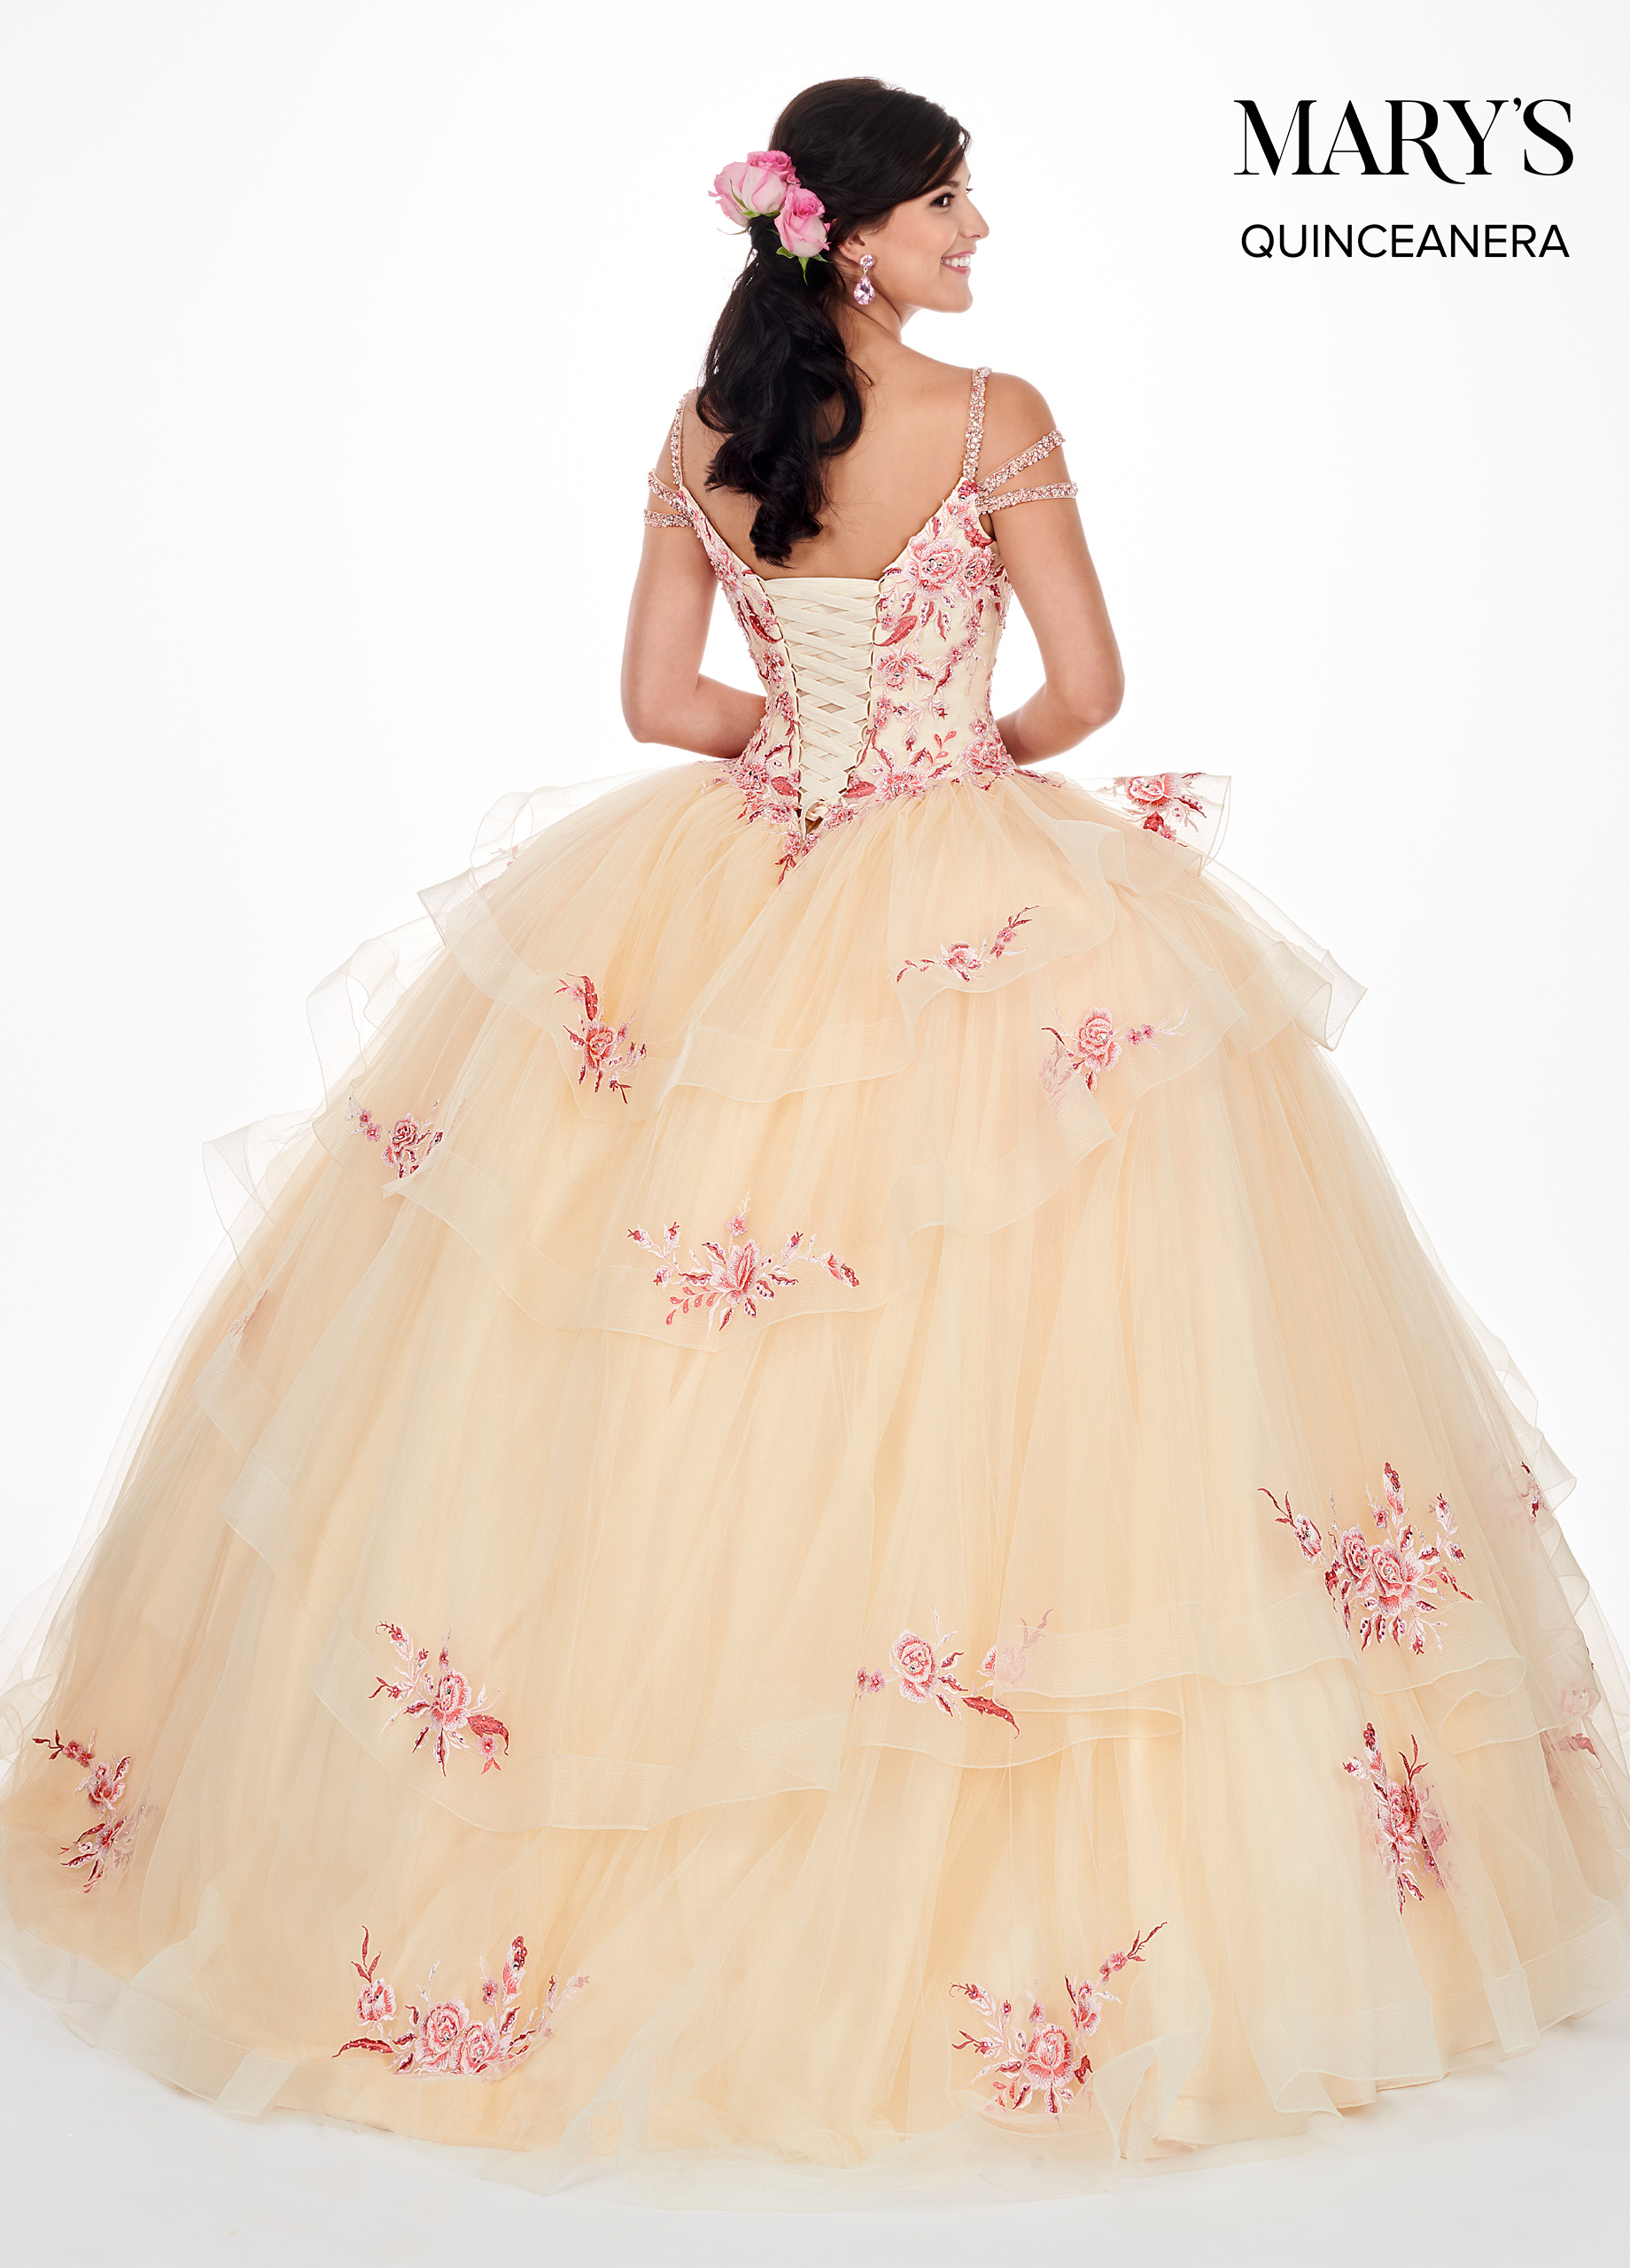 Marys Quinceanera Dresses | Mary's Quinceanera | Style - MQ2059